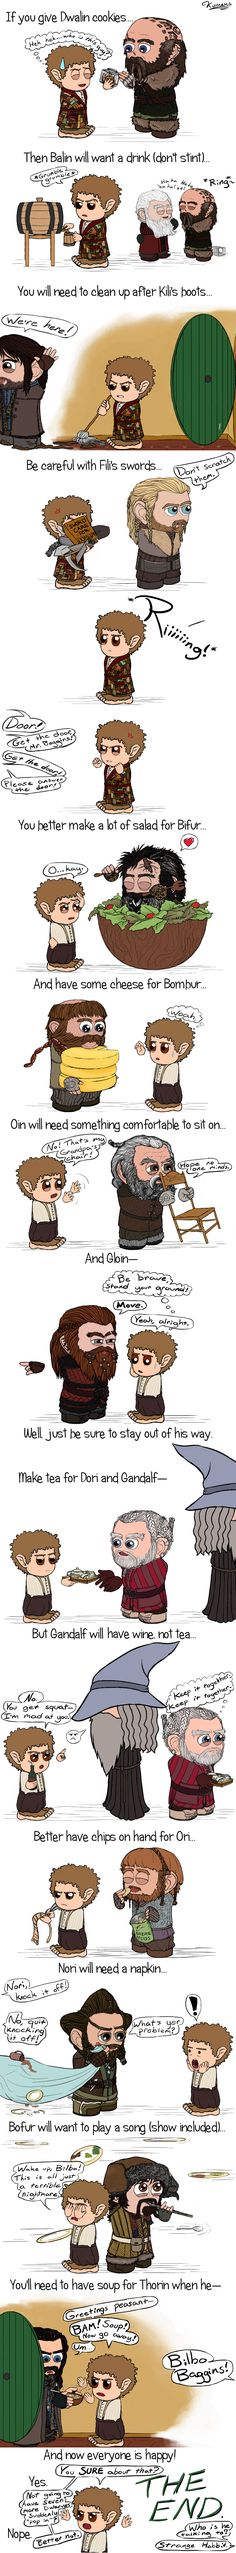 HOBBIT: If You Give by Kumama on deviantART